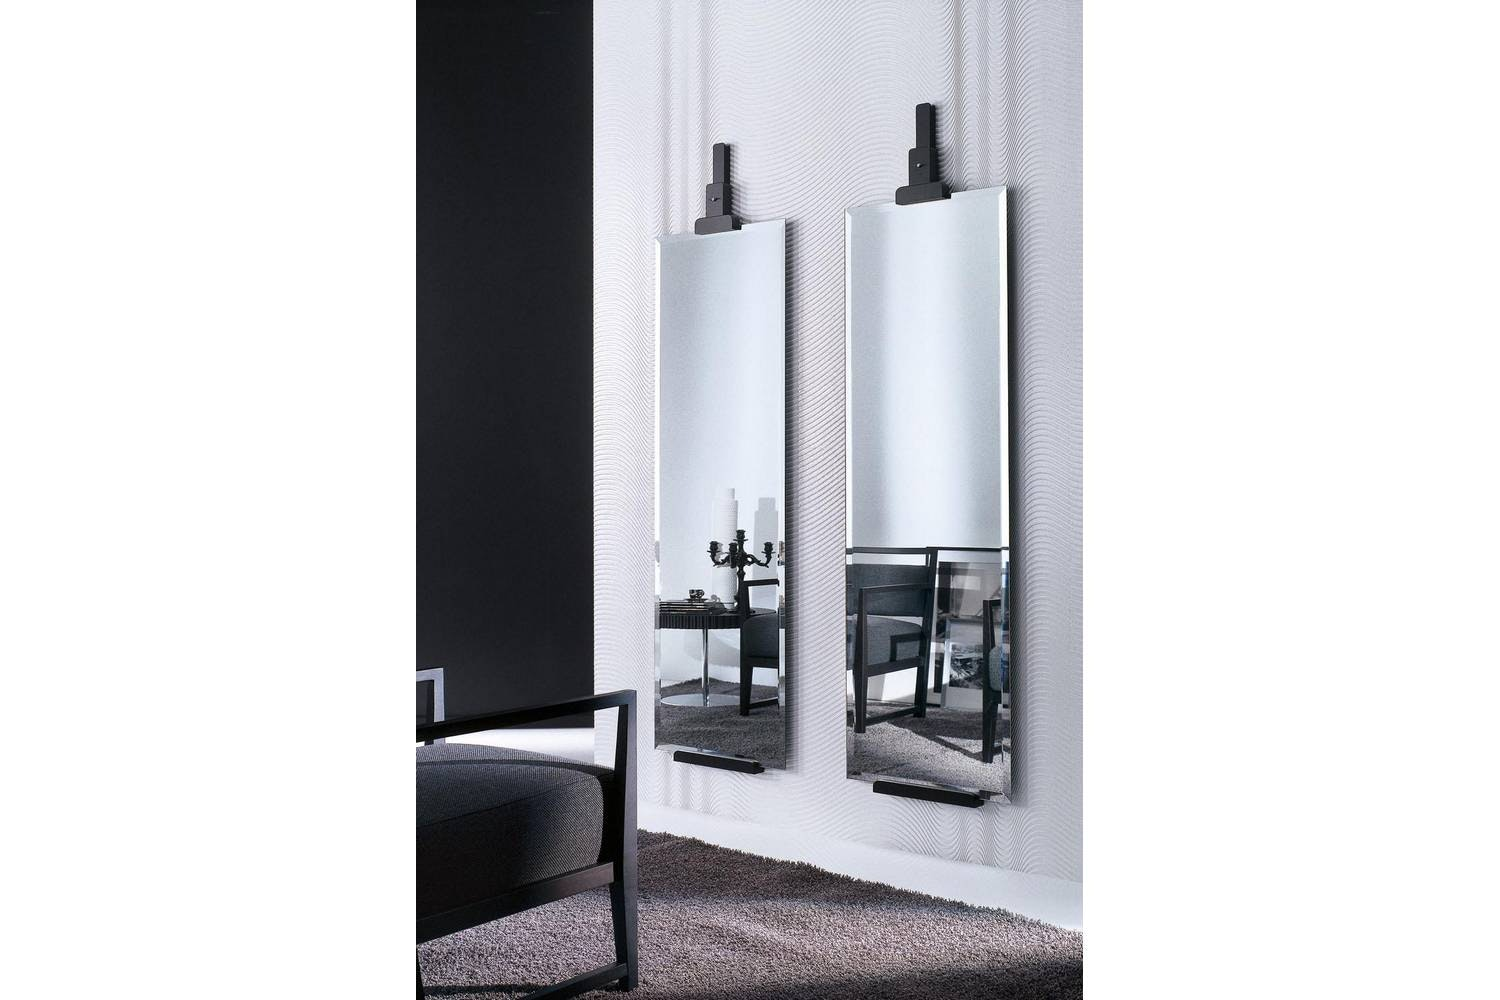 Miro Mirror by M. Seveso - L. Trezzi for Porada